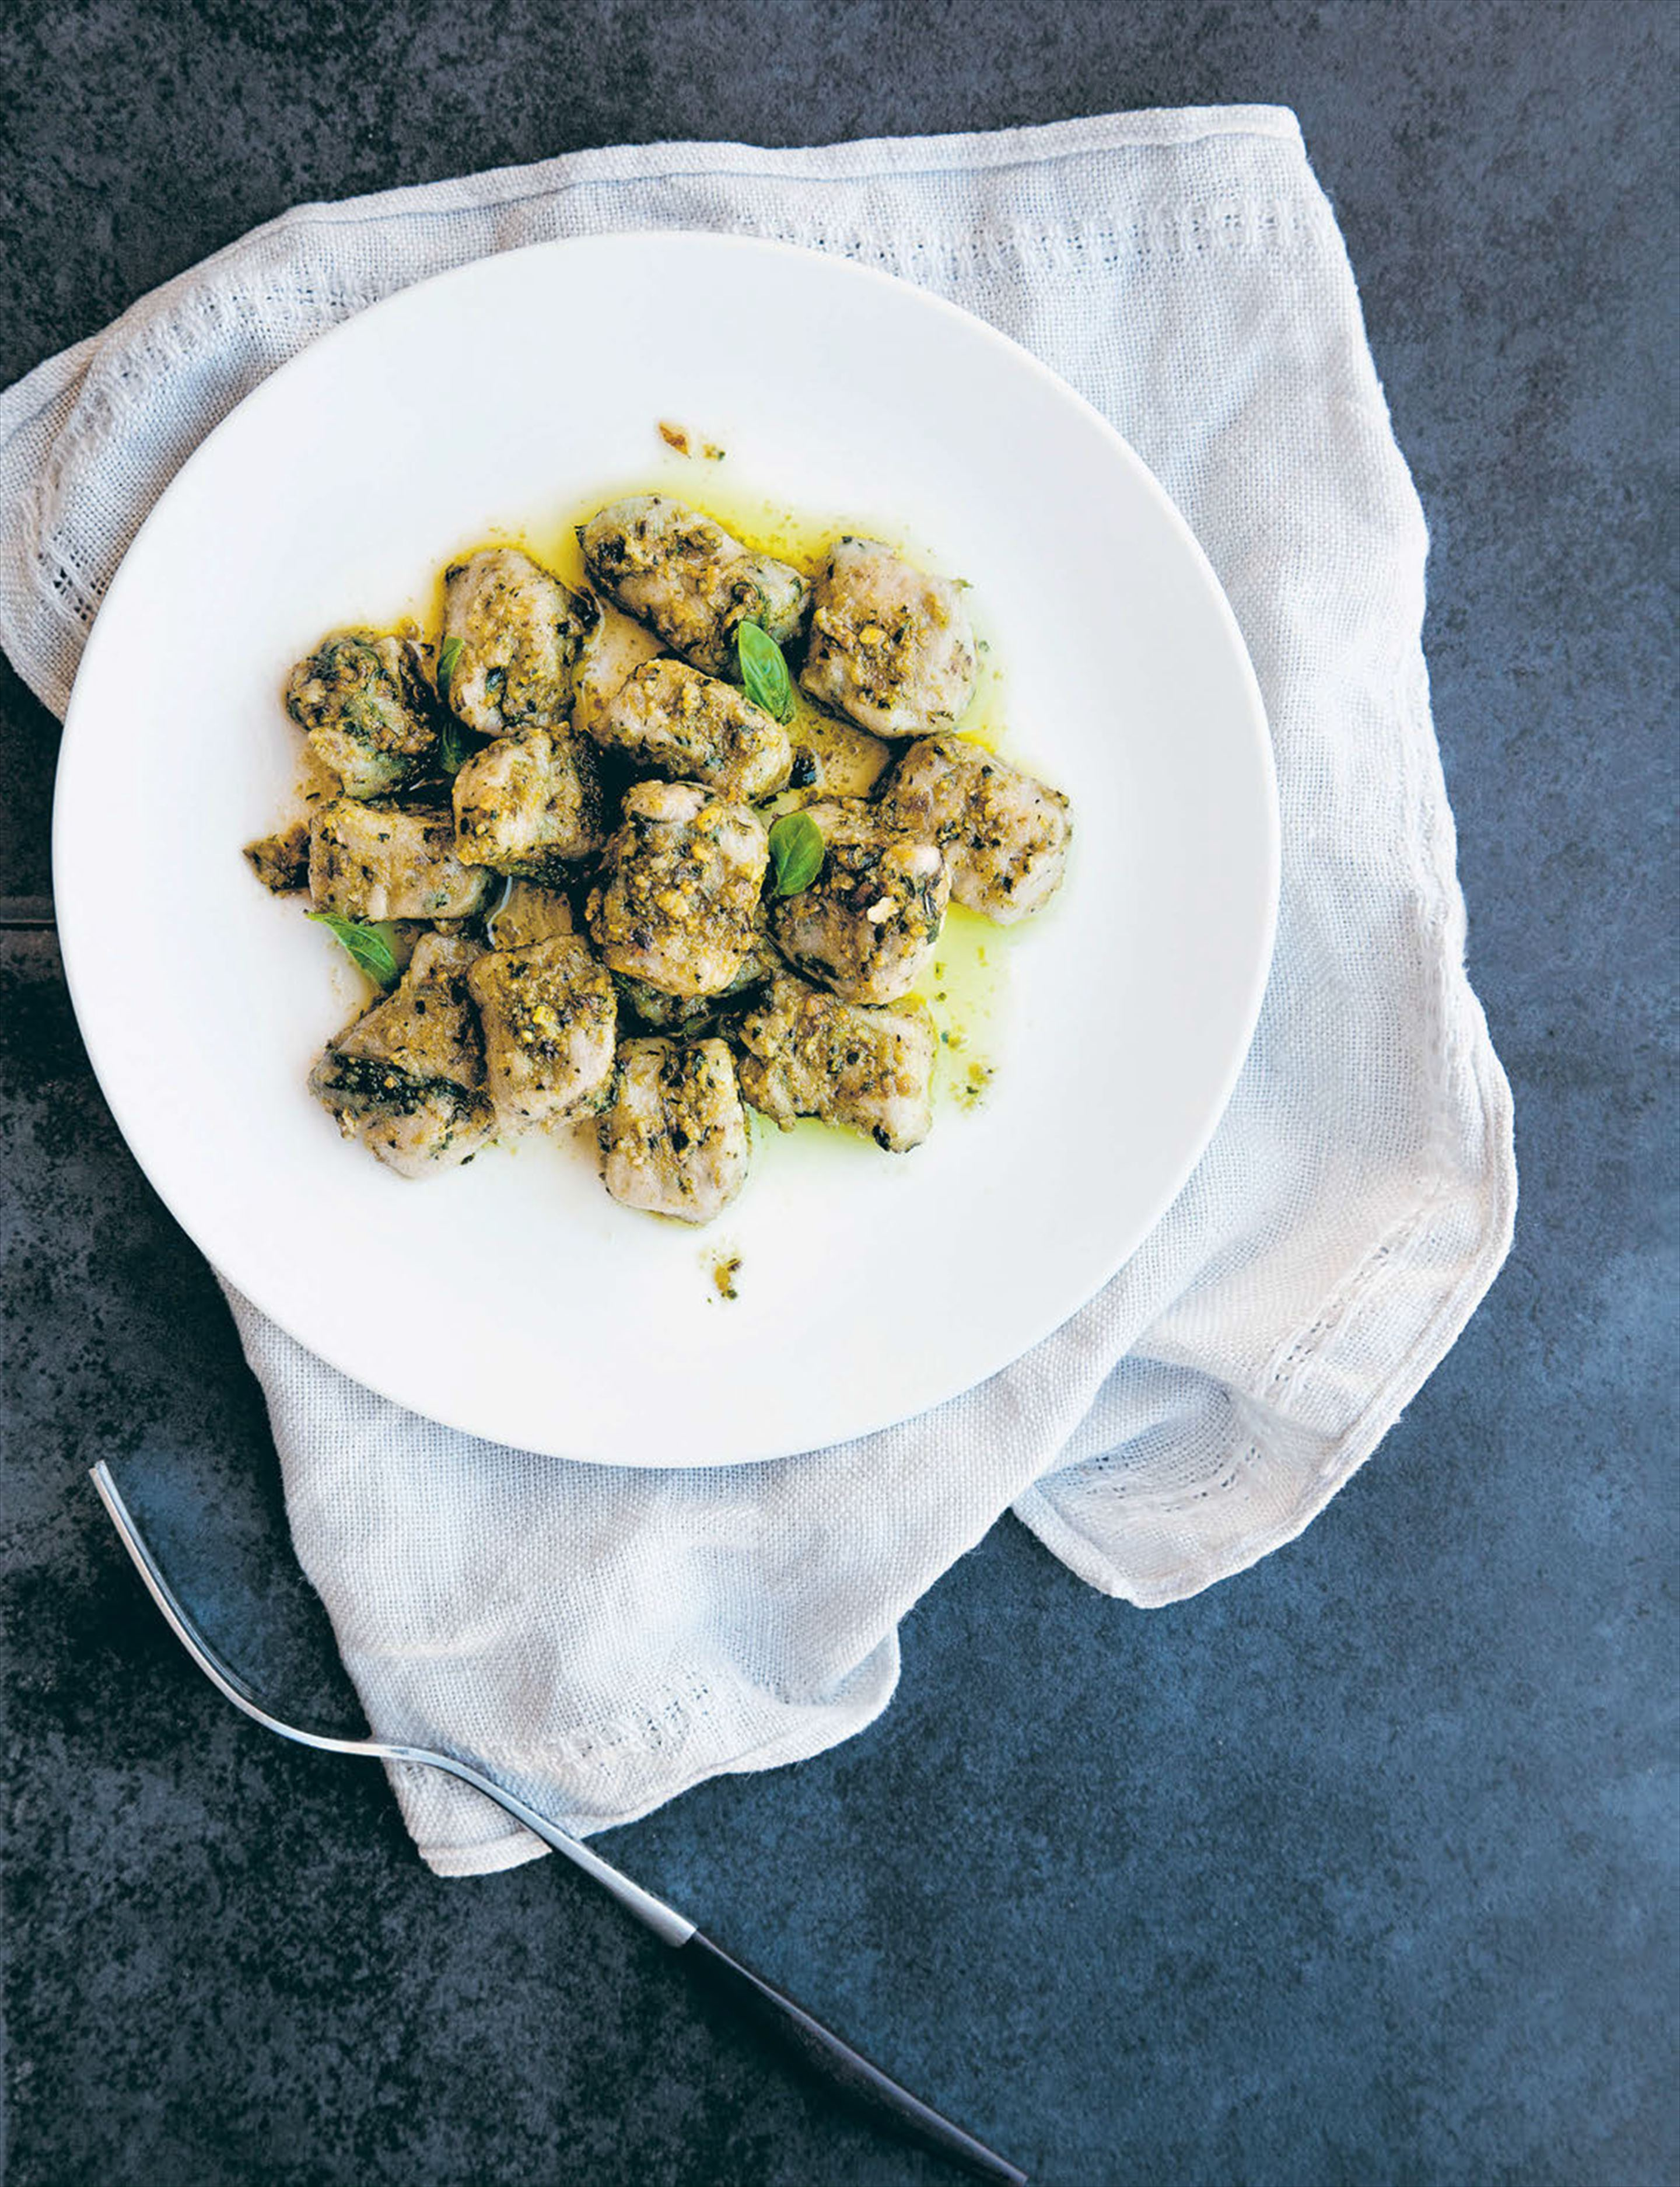 Spinach gnocchi with basil pesto